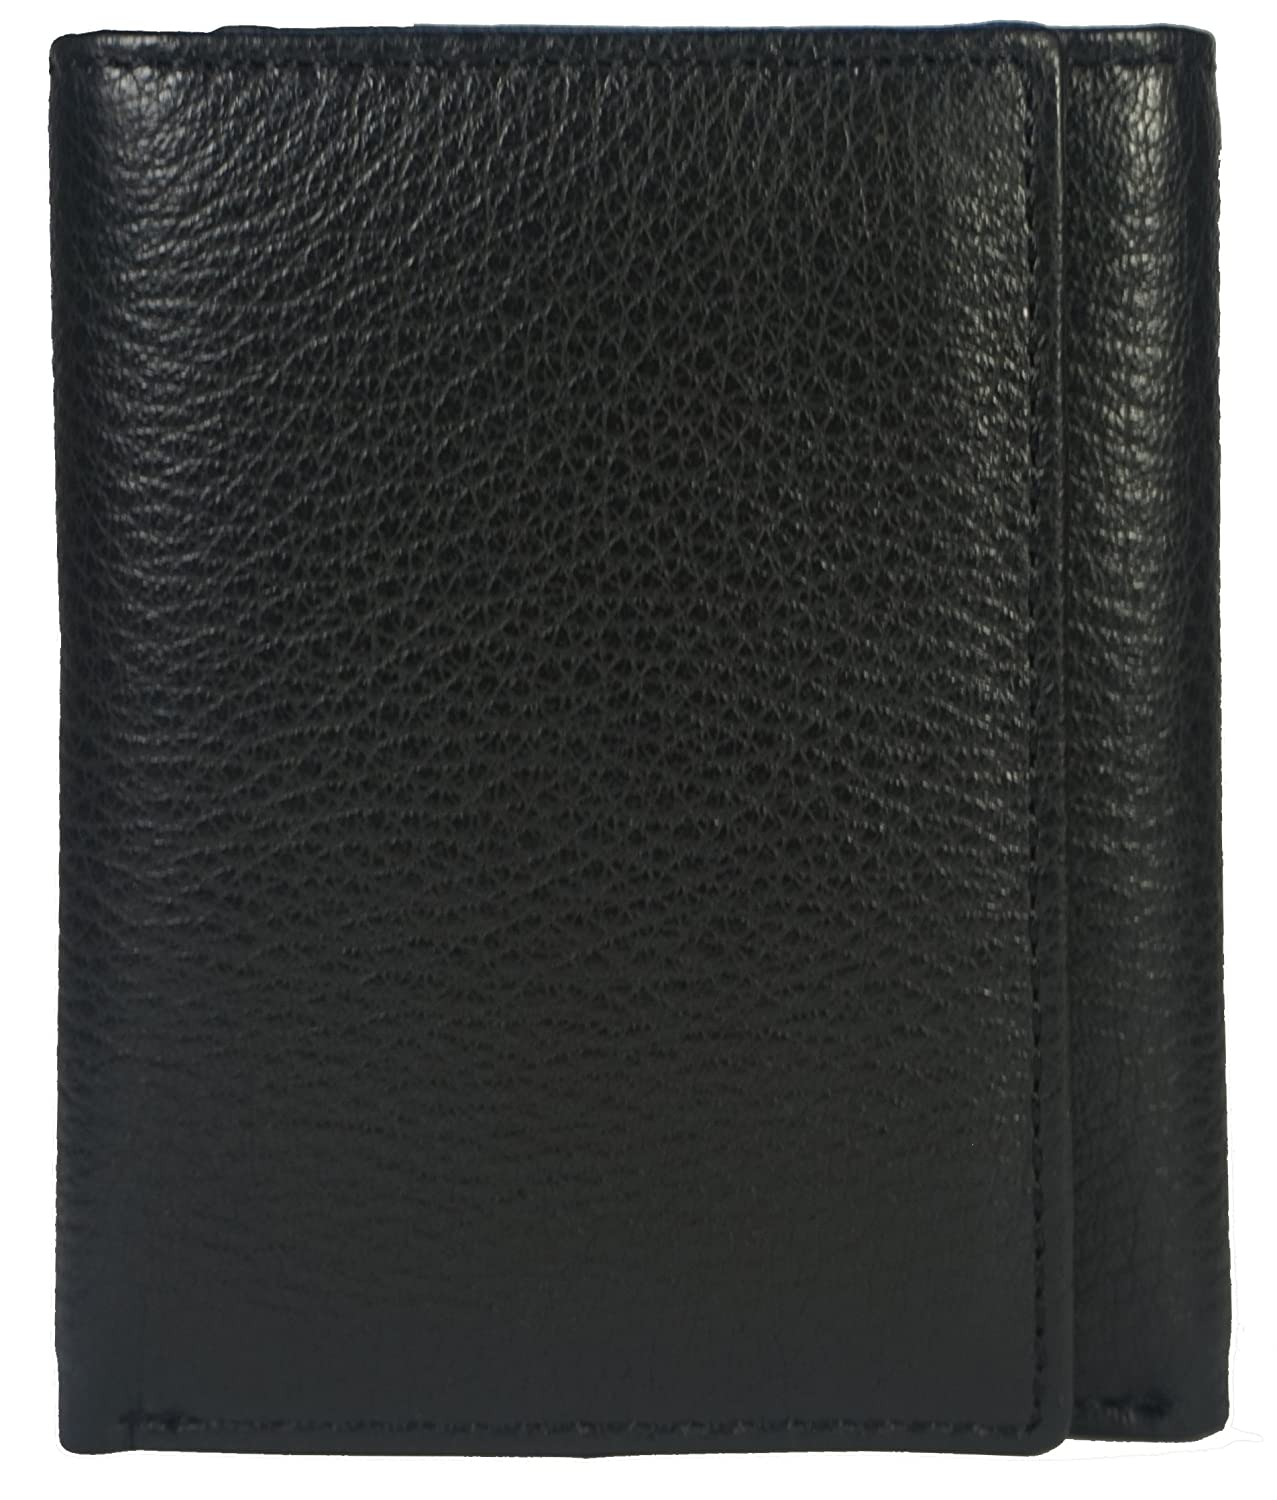 Mens Trifold Wallet Extra Capacity 8 Inside Slots 2 Id Windows By Bullz